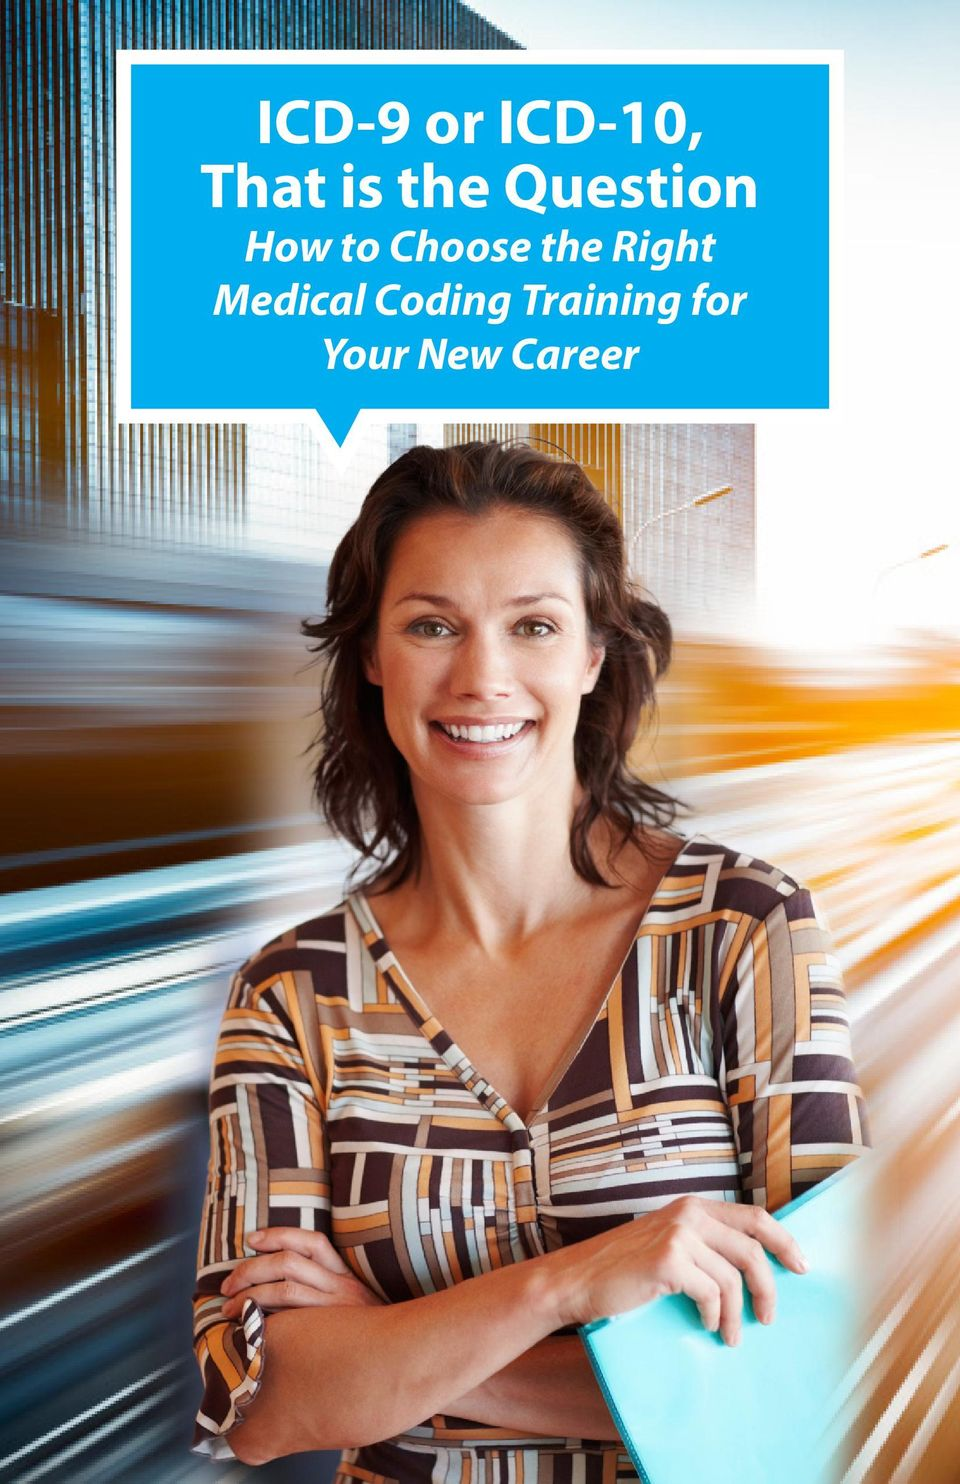 the Right Medical Coding